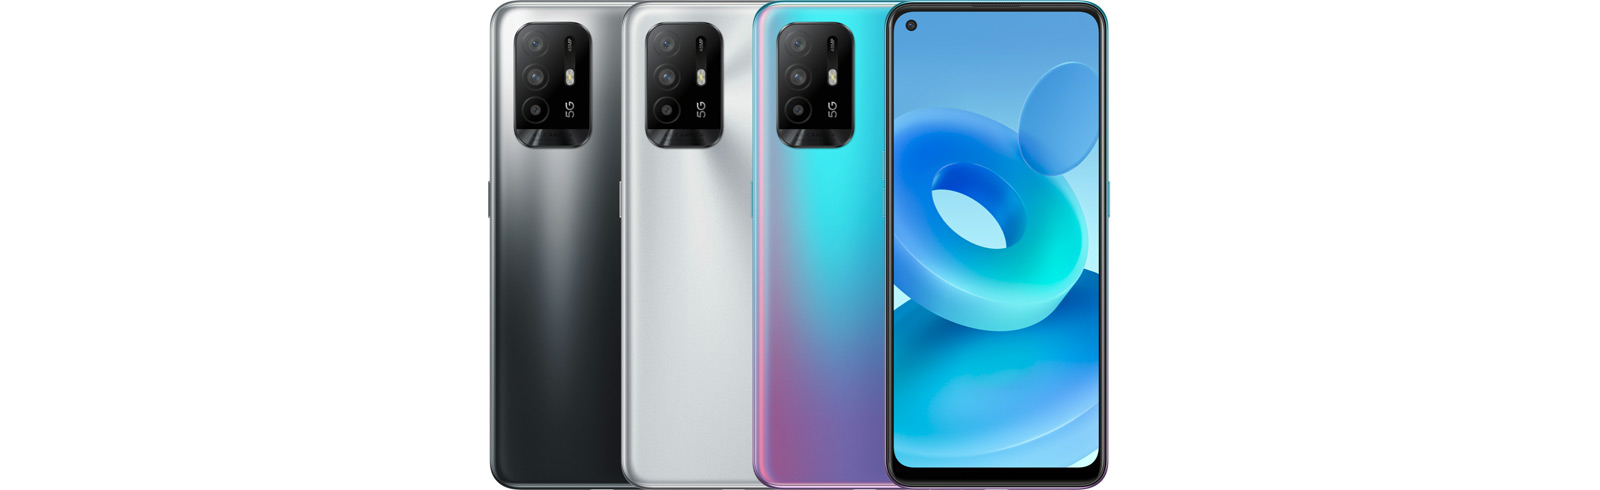 Oppo A95 5G is unveiled, almost identical to the A94 5G for Europe